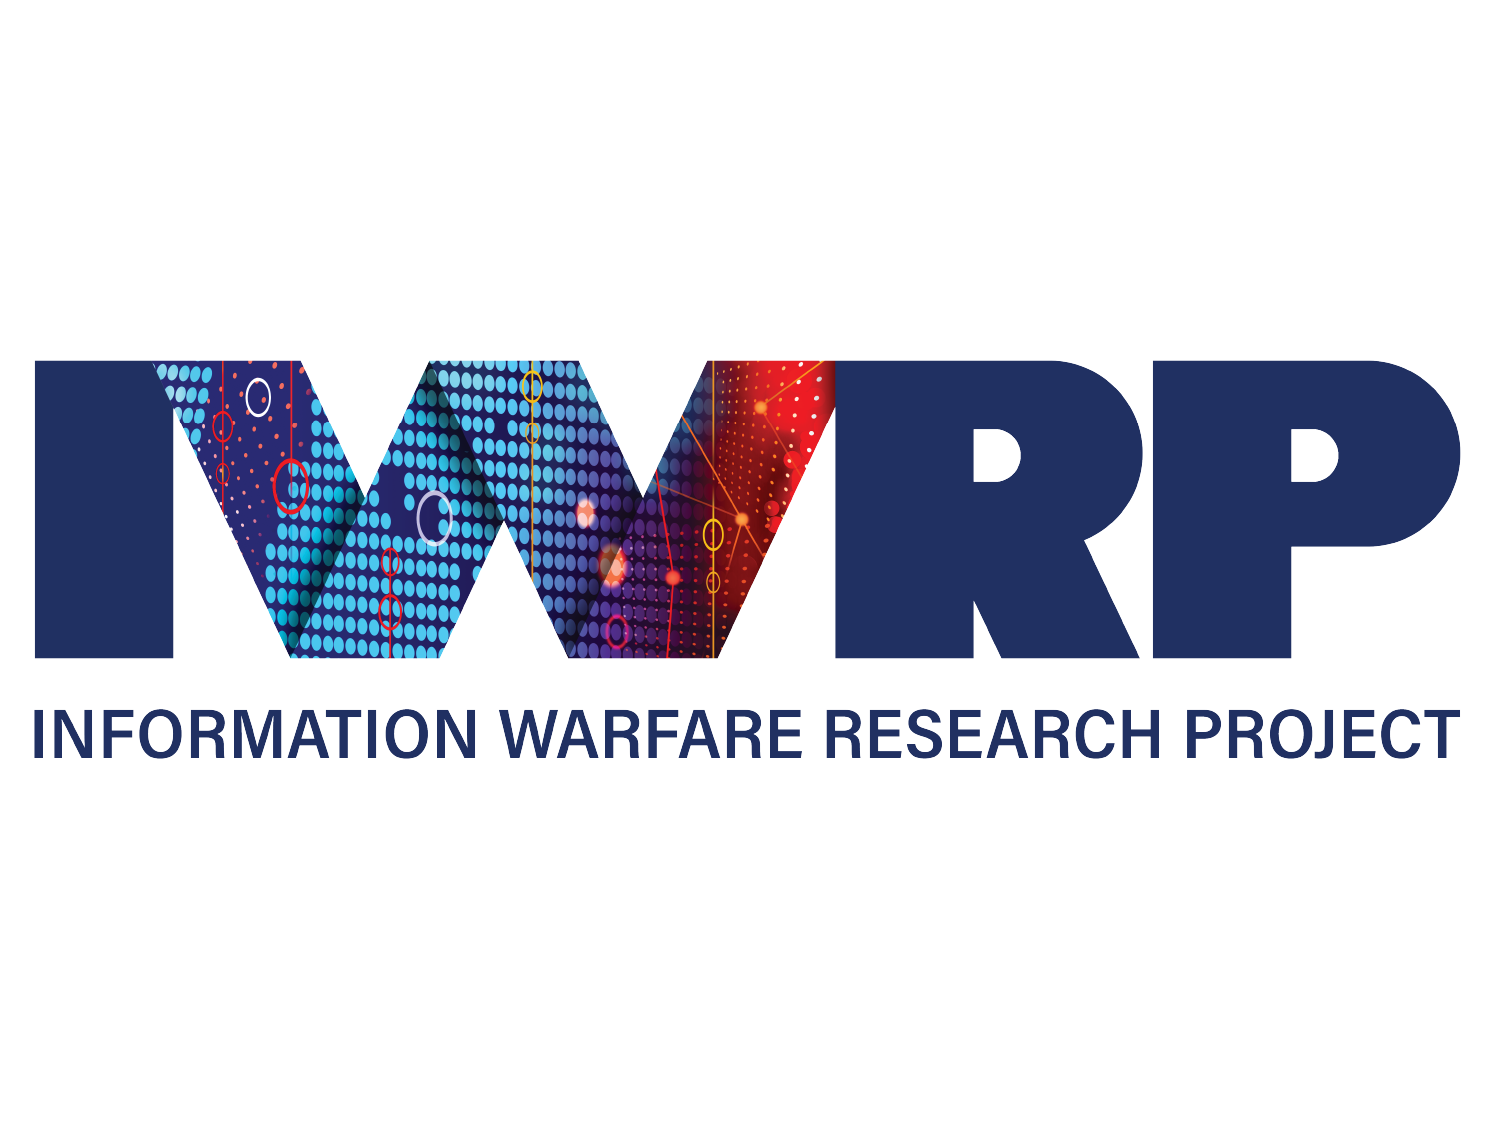 Information Warfare Research Project (IWRP)